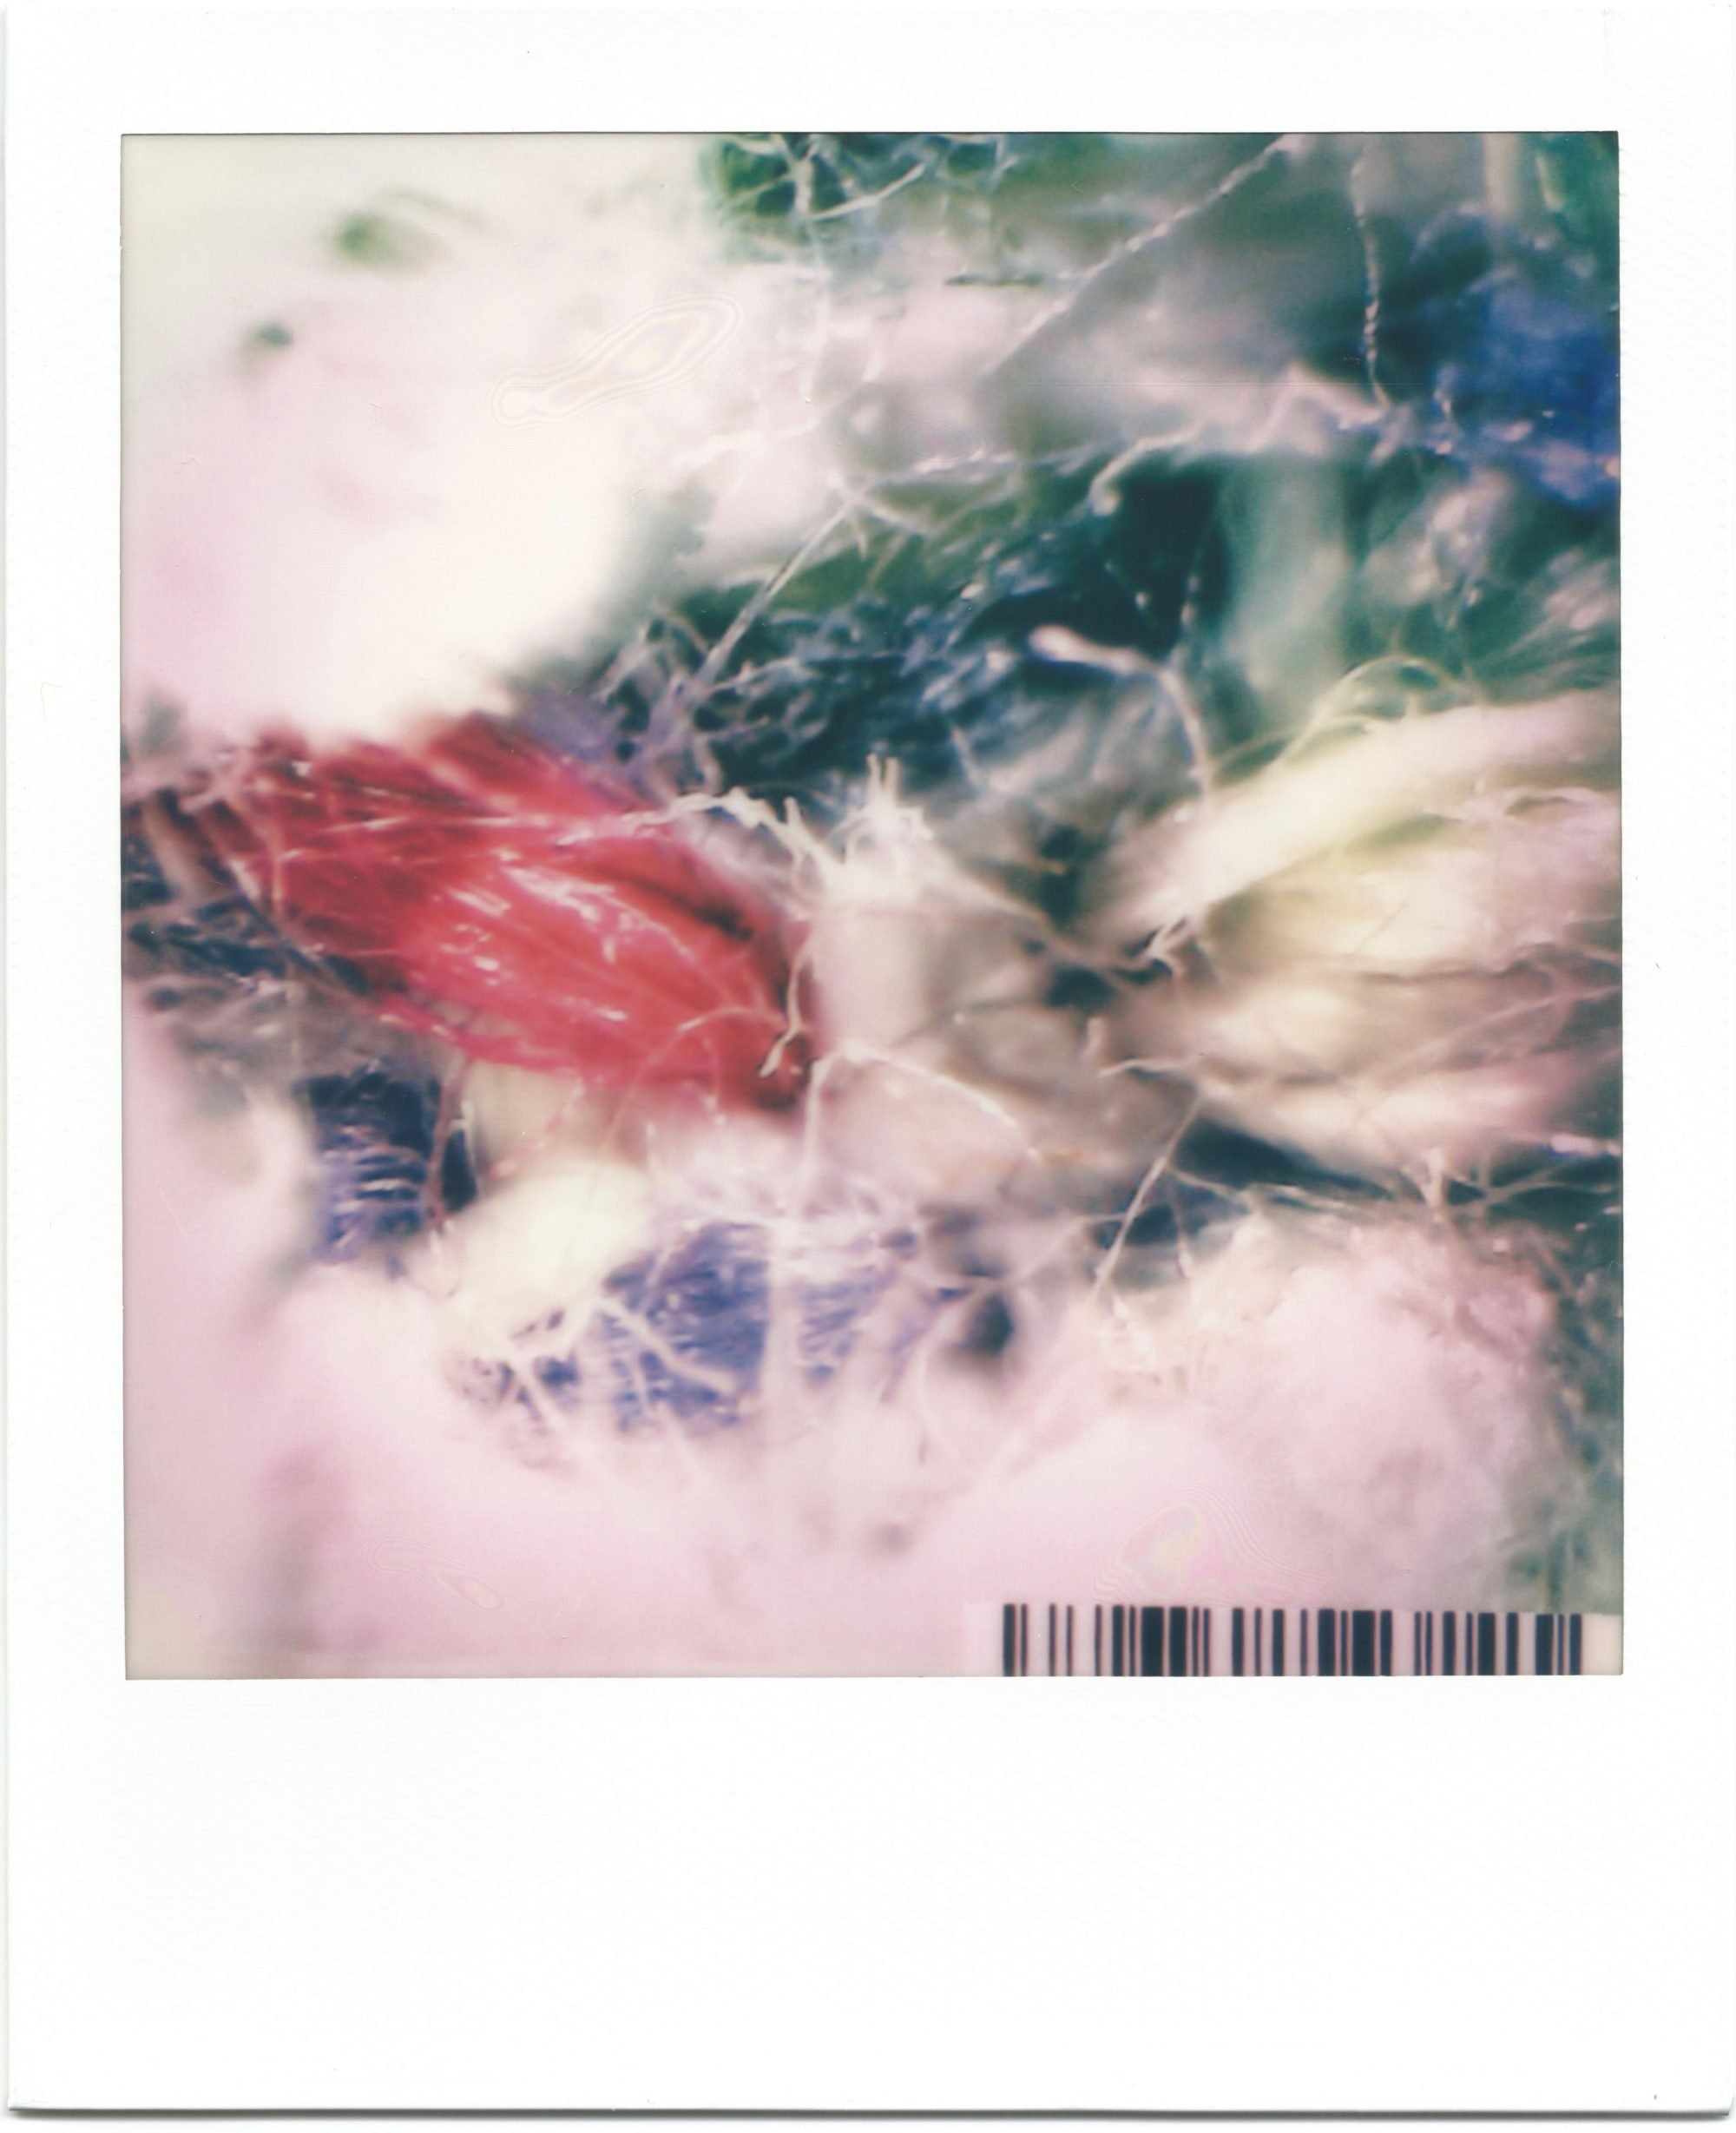 In a white polaroid print frame, is an image of highly magnified textile fibres. White fibres cover the bottom of the image and top left corner. In the top right corner dark green and blue fibres blend into the background. A cluster of red fibres peek through to the left. A small barcode sits in the bottom right corner.